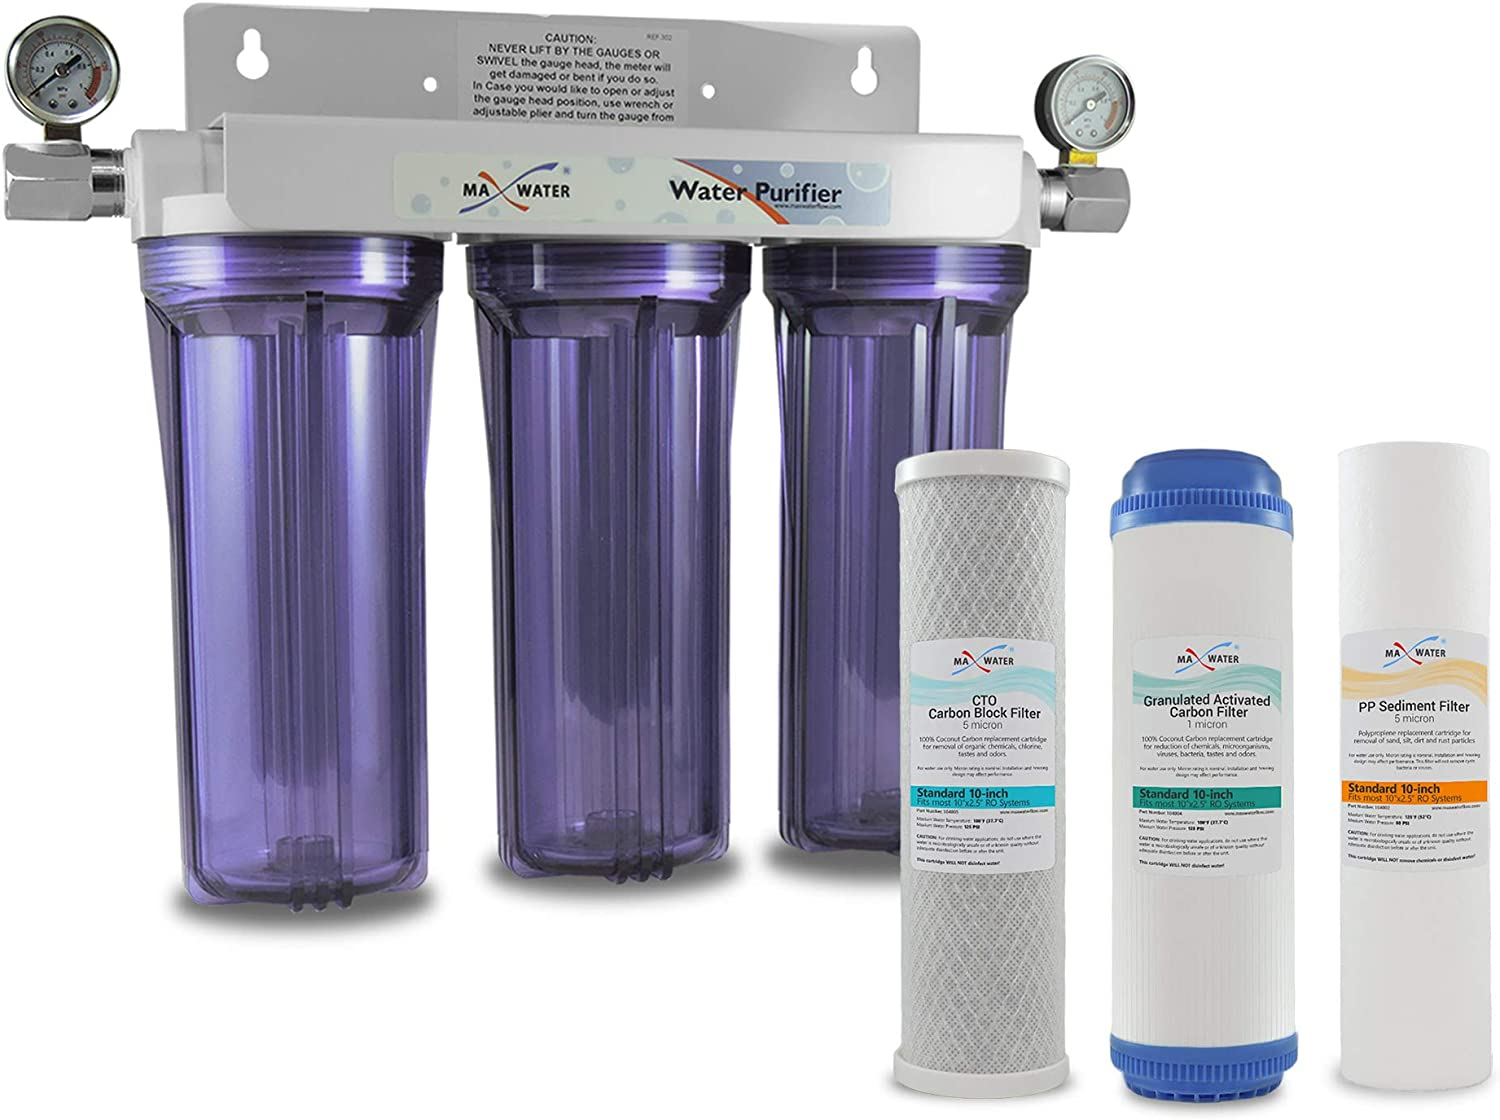 "Max Water Whole House Water Filter, 3 Stage Home Water Filtration System, w/ 10"" x 2.5"" Sediment, GAC, CTO Carbon Water Filters (Chlorine, Taste, and Odor) 3/4"" Ports w/ 2 Dry Pressure Gauge"